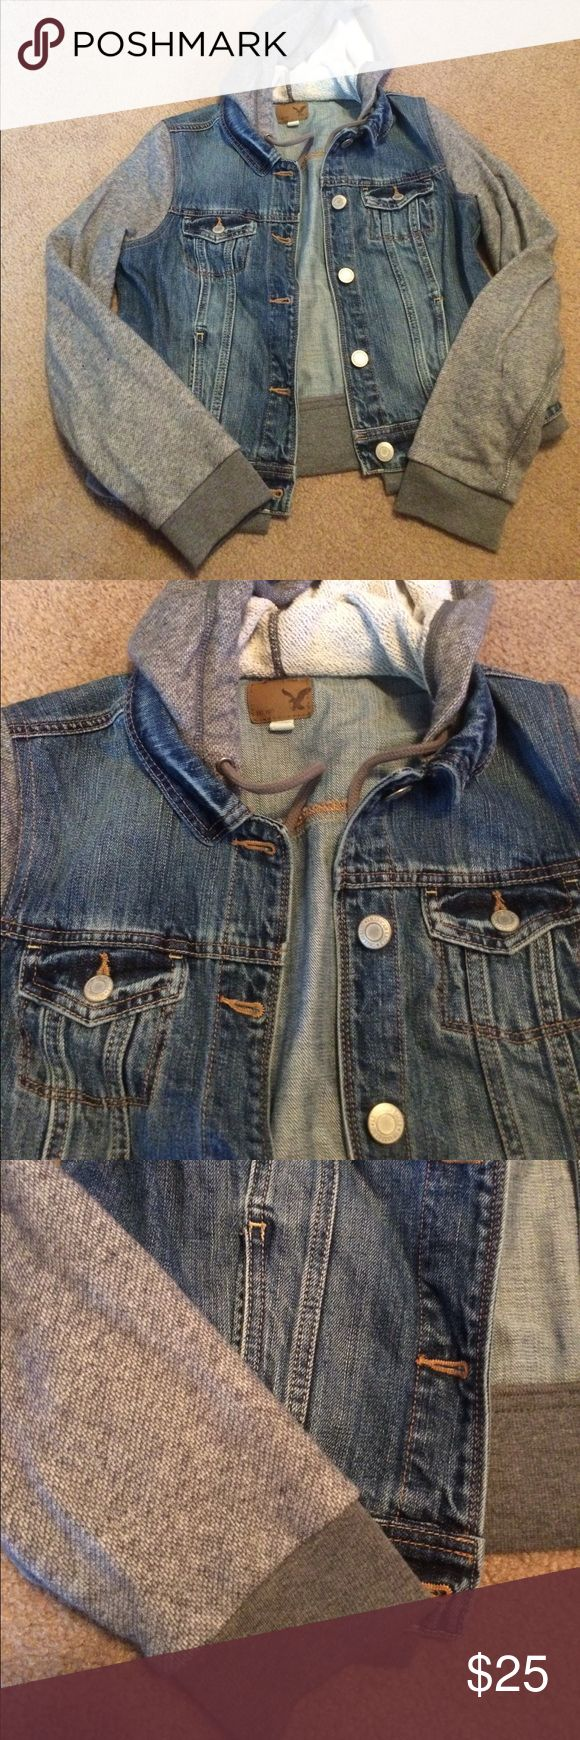 American Eagle denim jacket size large American Eagle denim jacket size large, gray sleeves and hood American Eagle Outfitters Jackets & Coats Jean Jackets